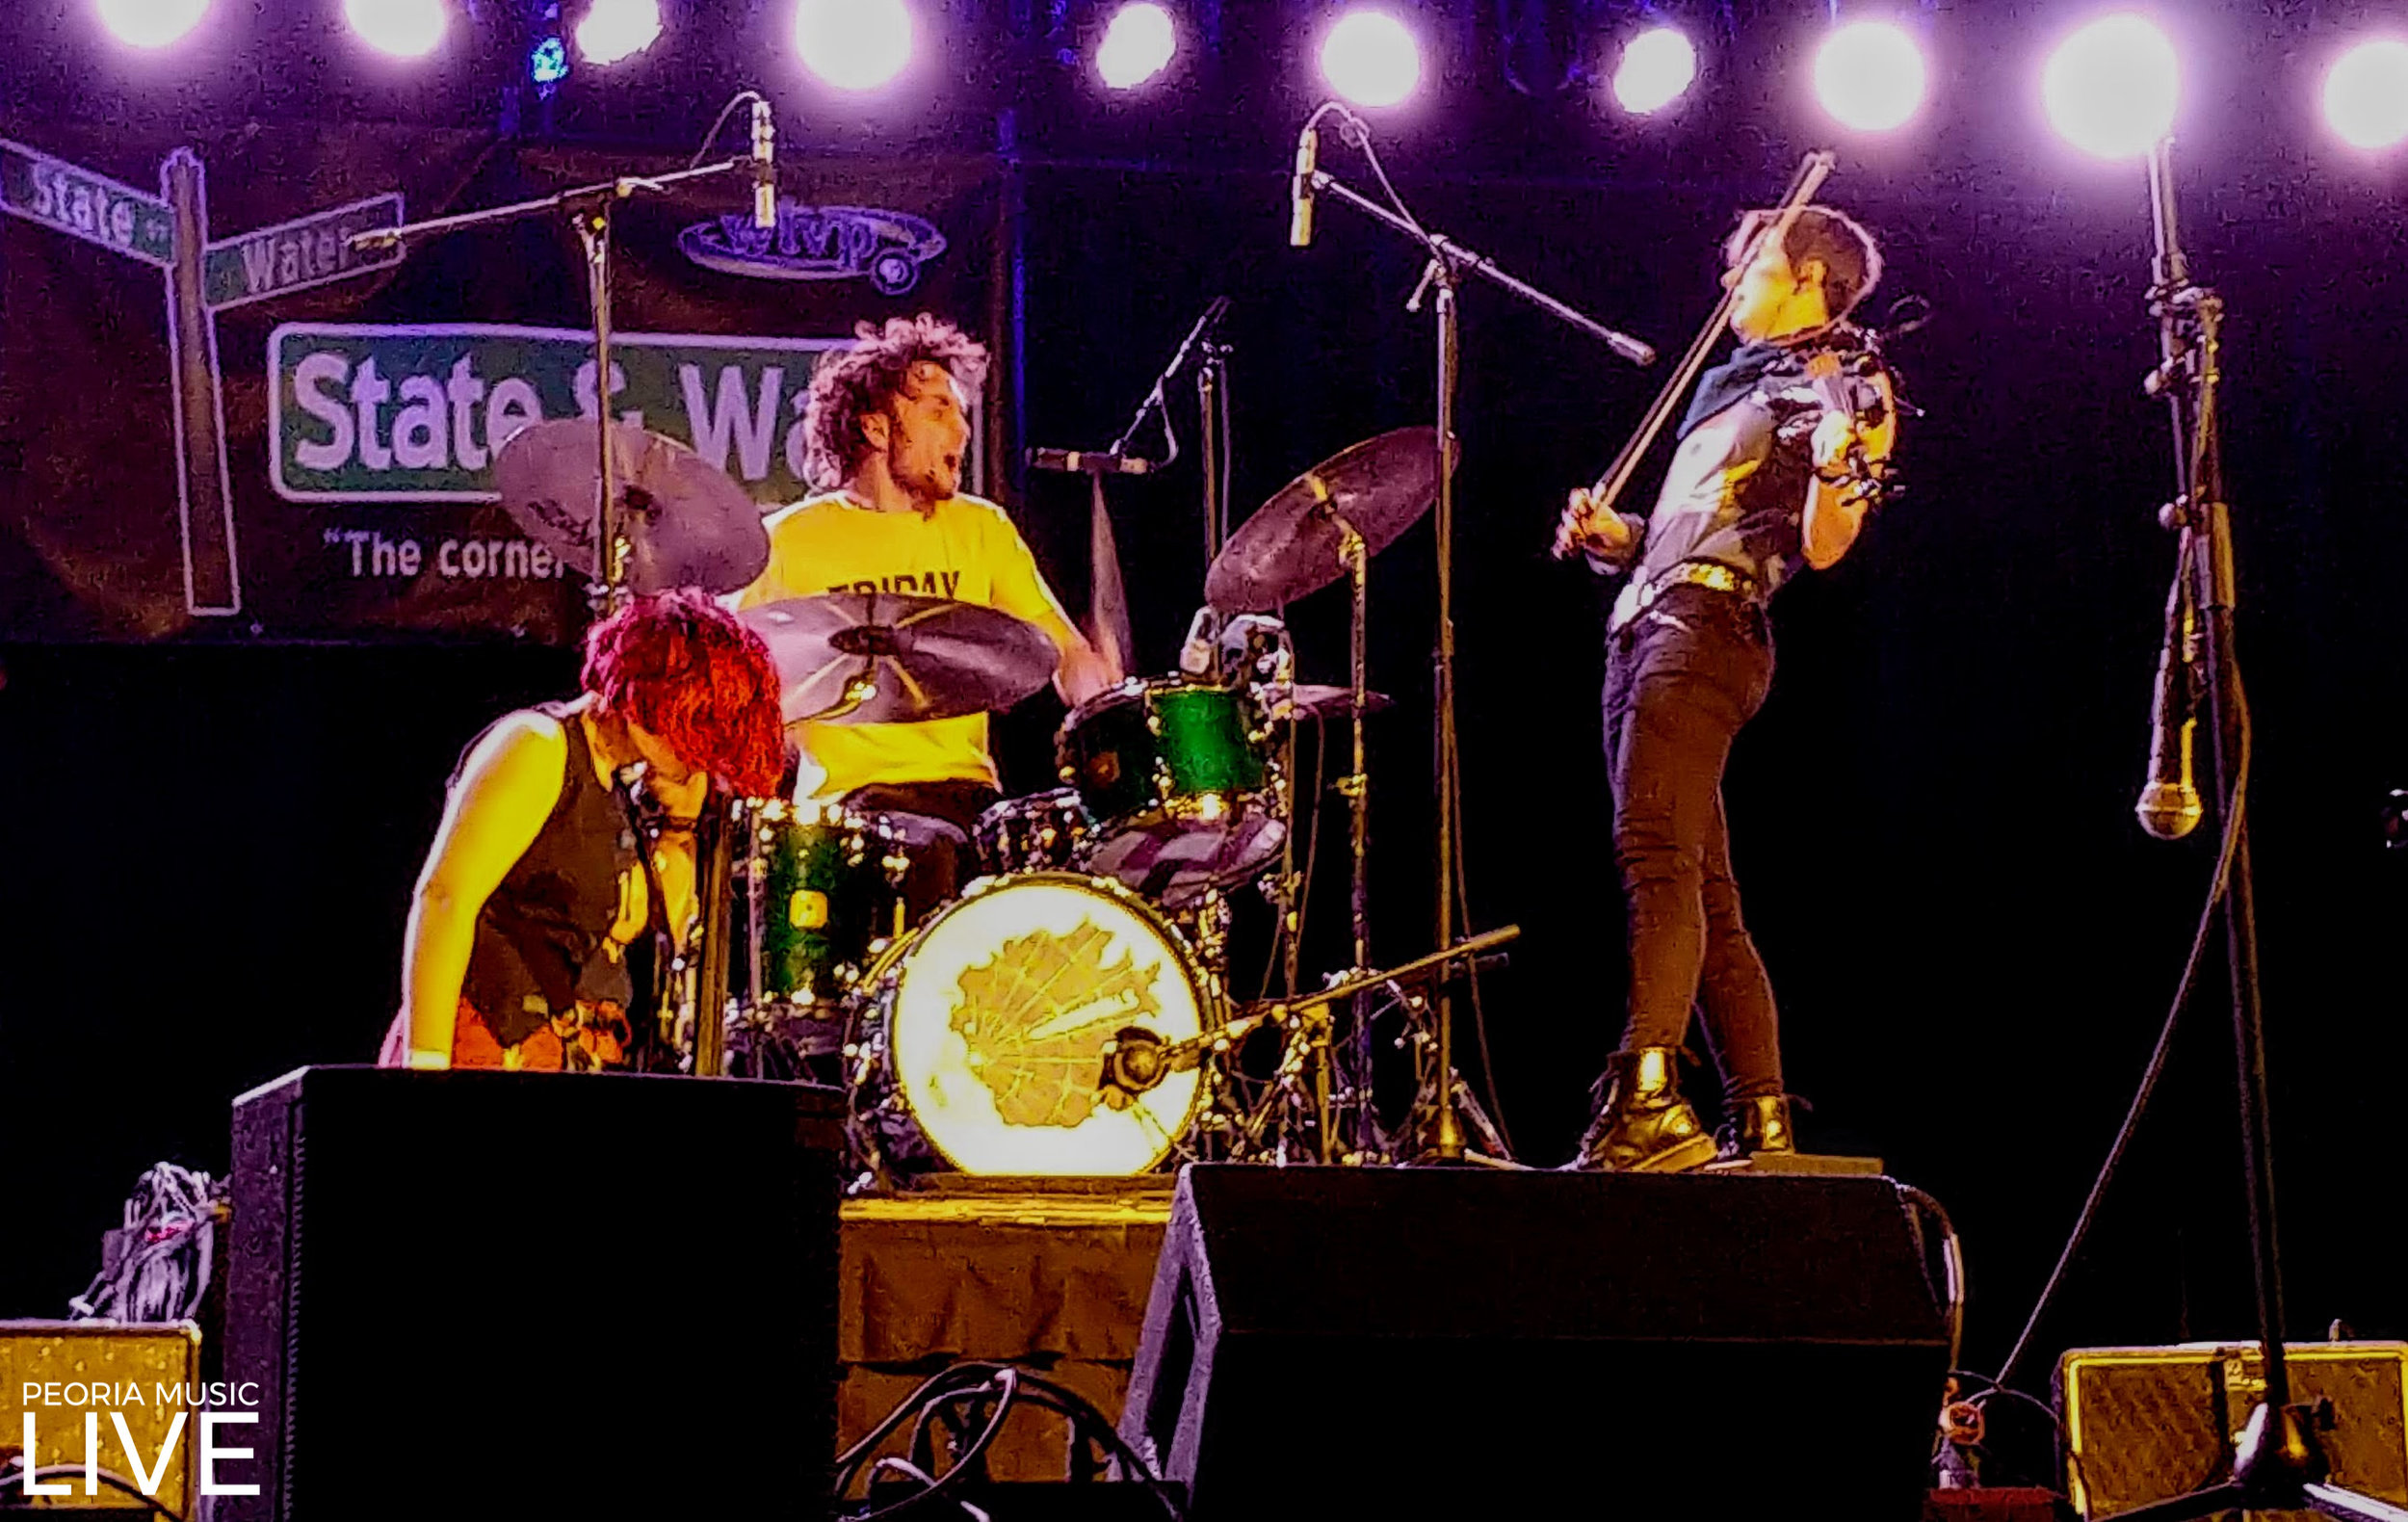 The Accidentals are one my personal favorites who I discovered thanks to State & Water.